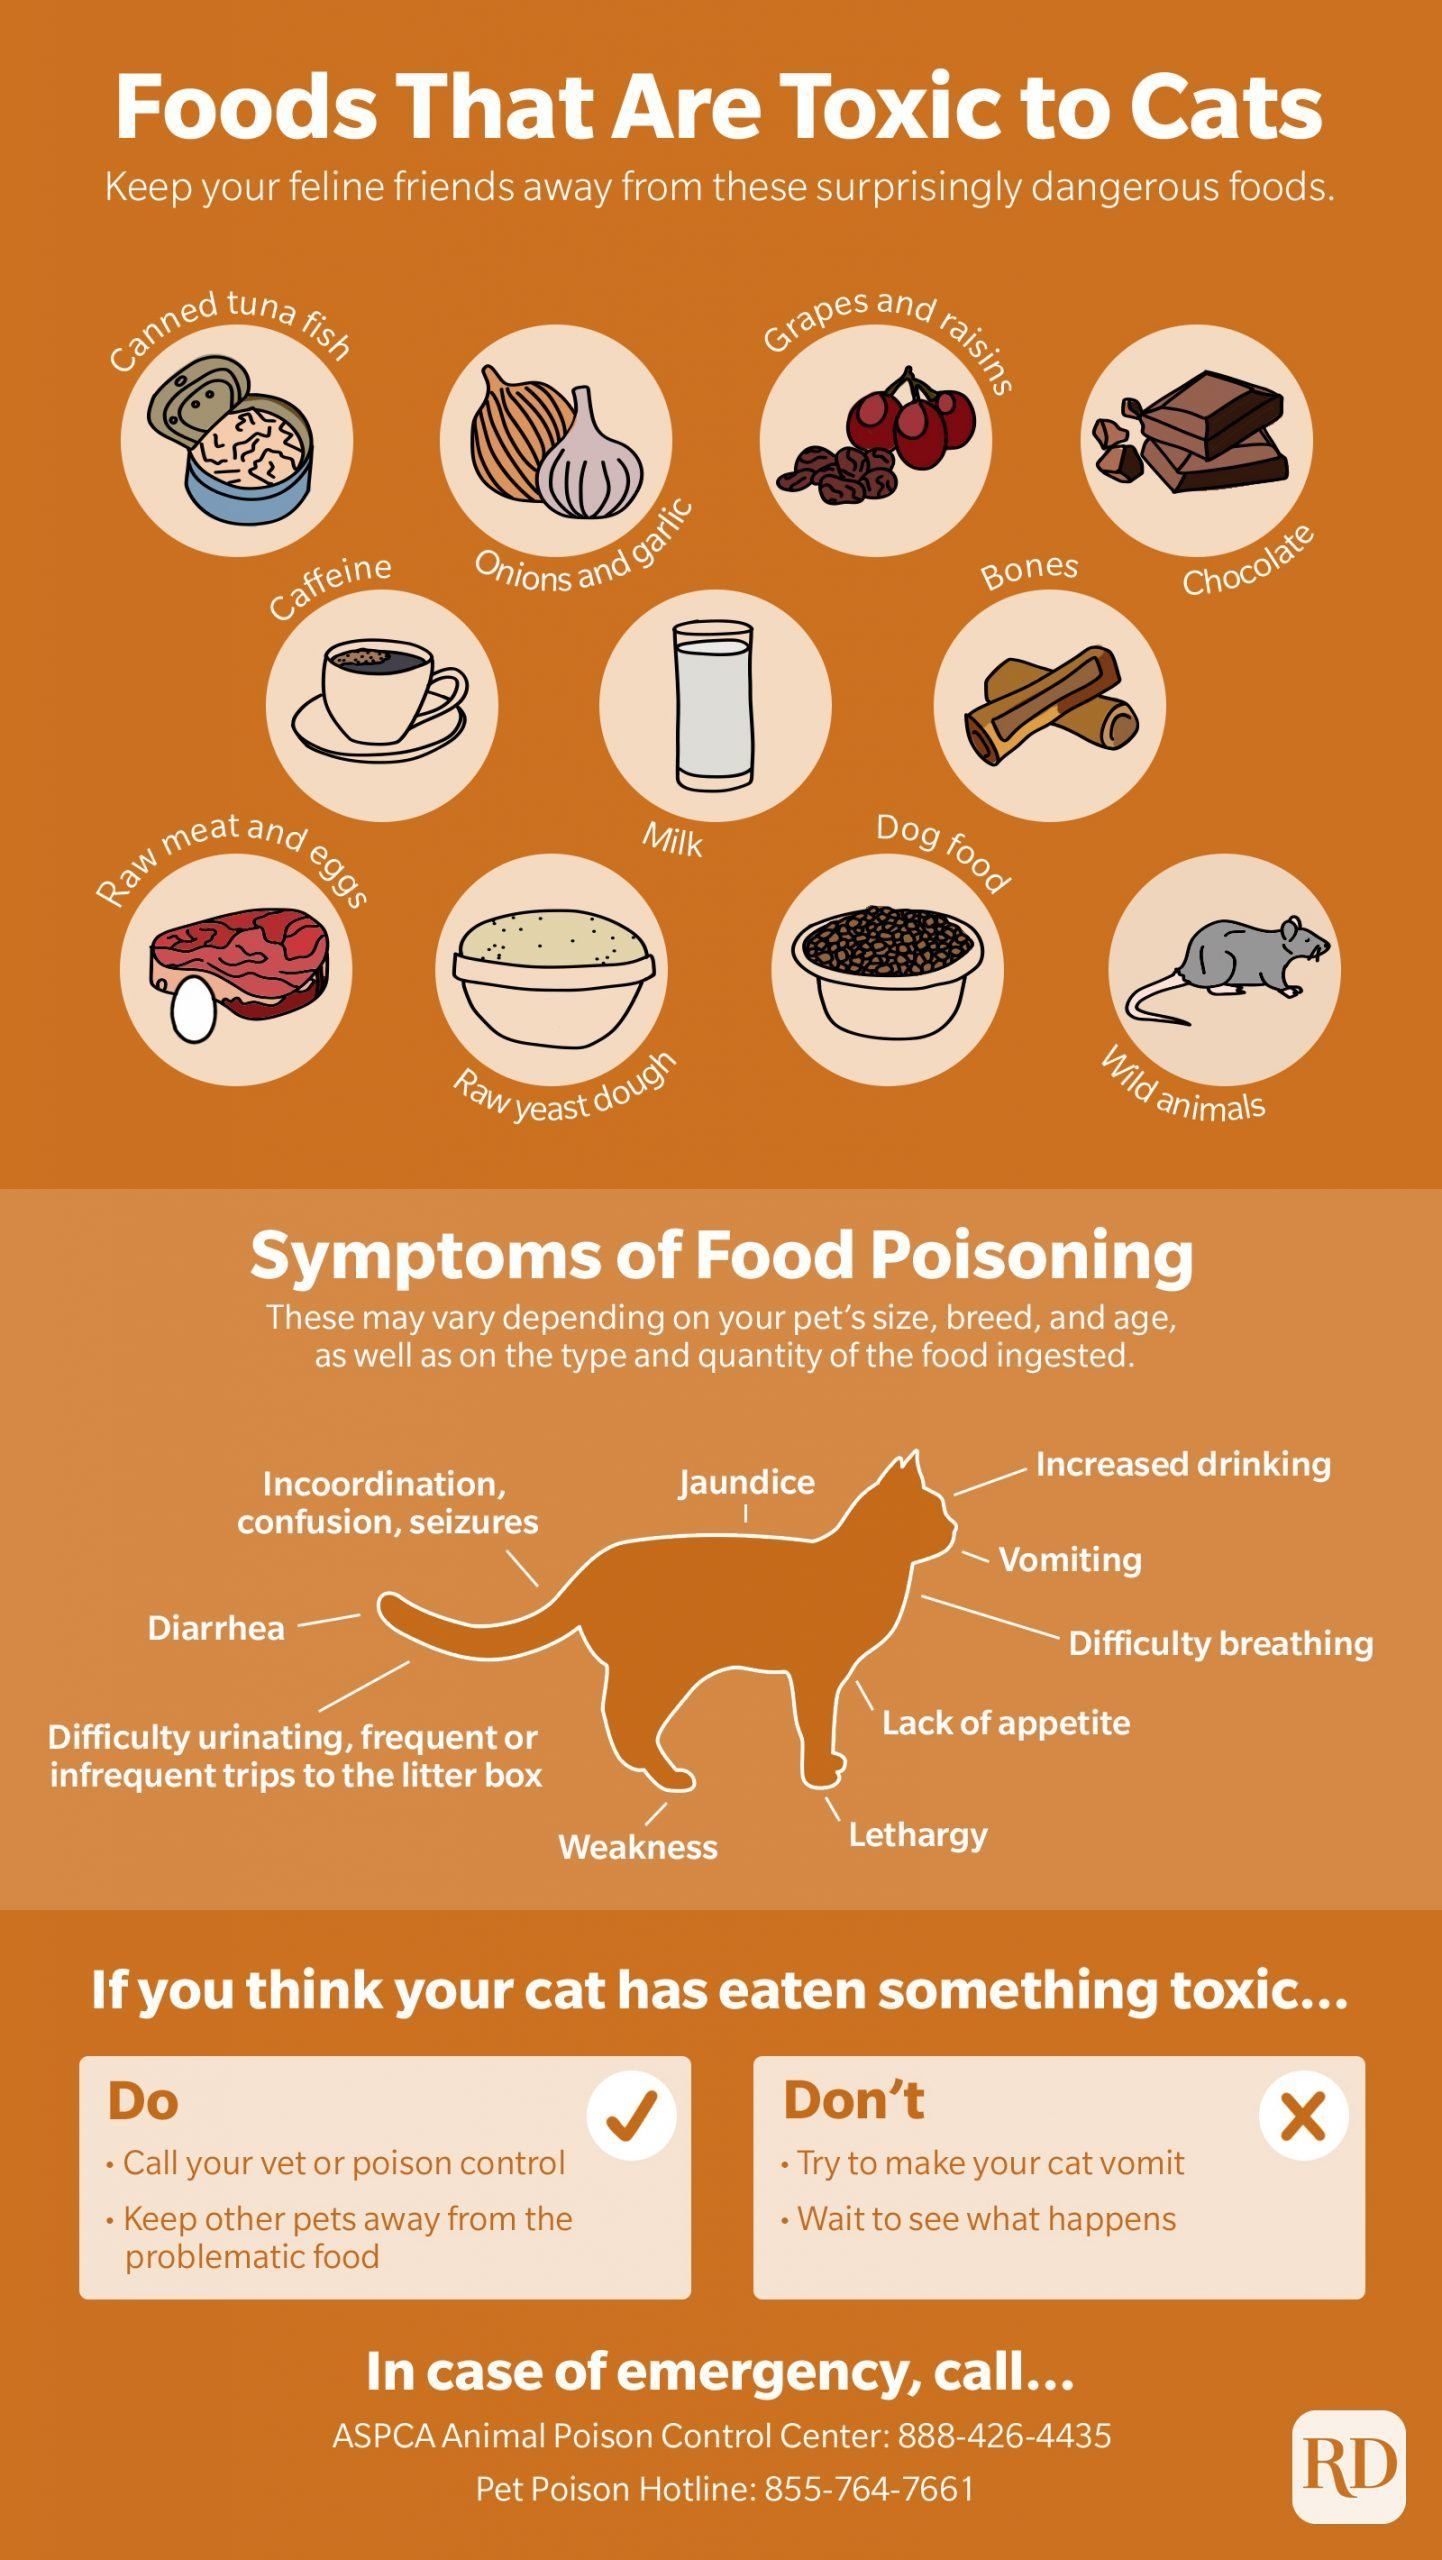 Foods that are toxic to cats infographic